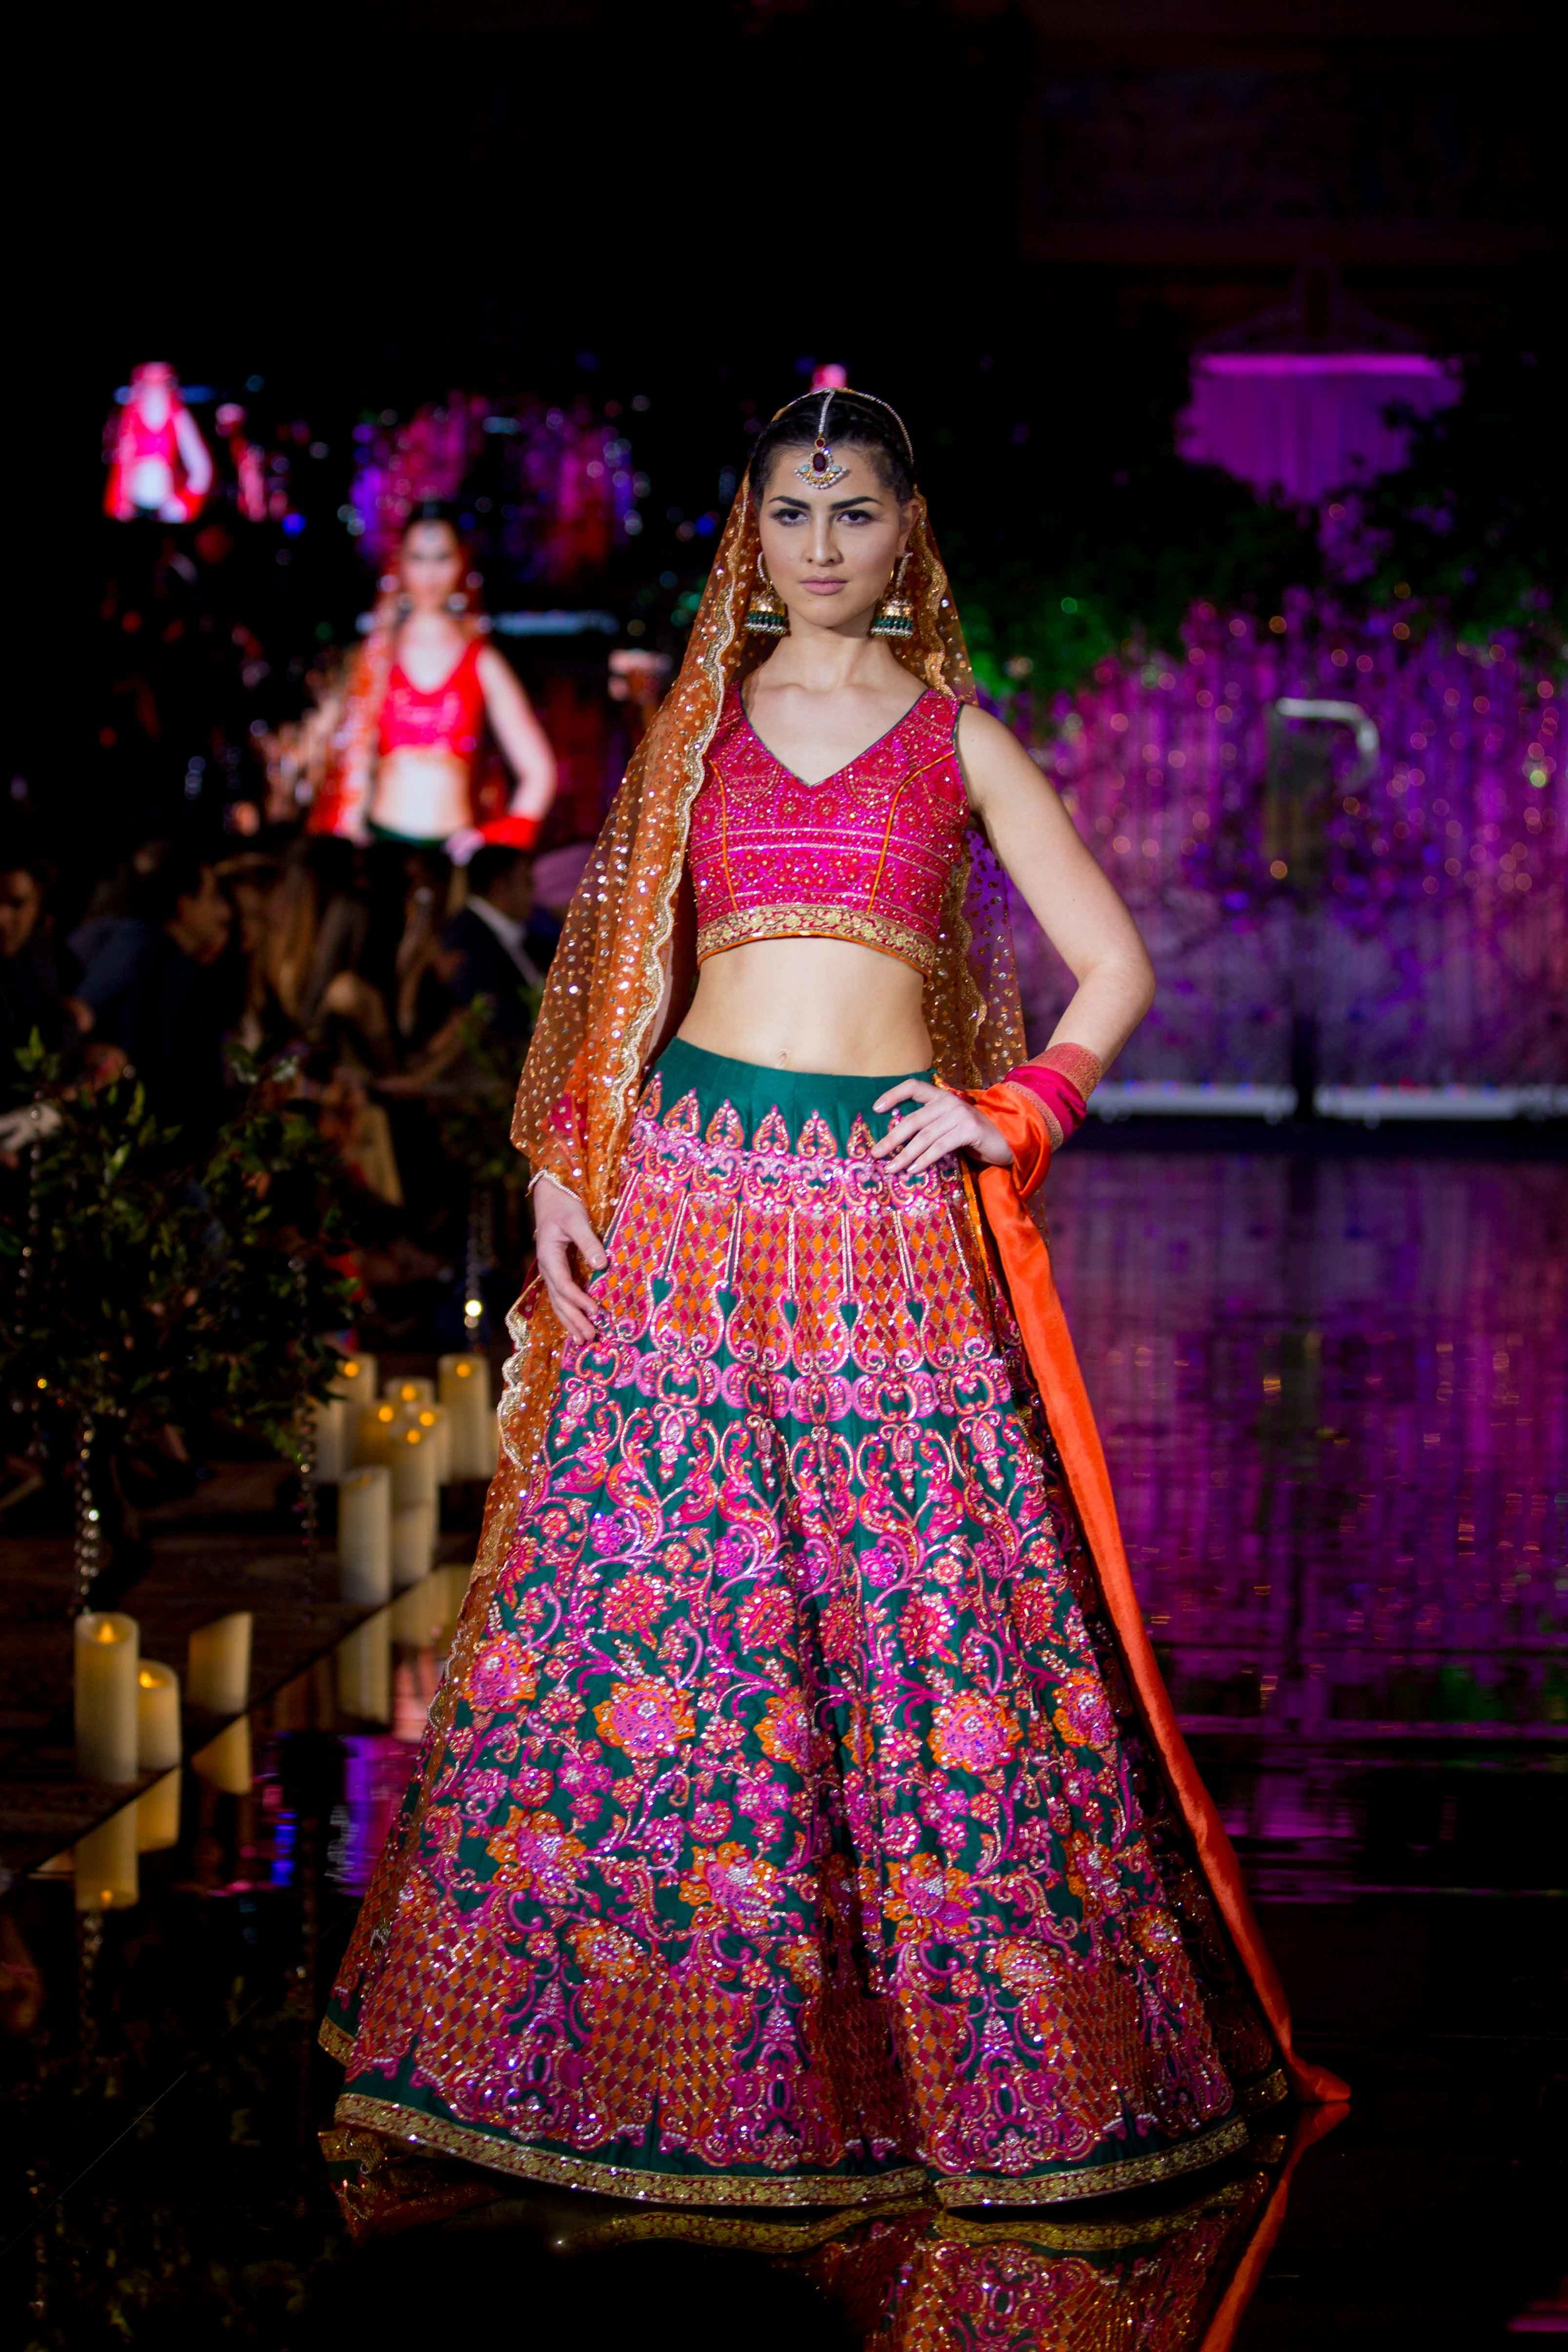 IPLF-IPL-Indian-Pakistani-London-Fashion-London-Week-catwalk-photographer-natalia-smith-photography-nomi-ansari-rangposh-9.jpg